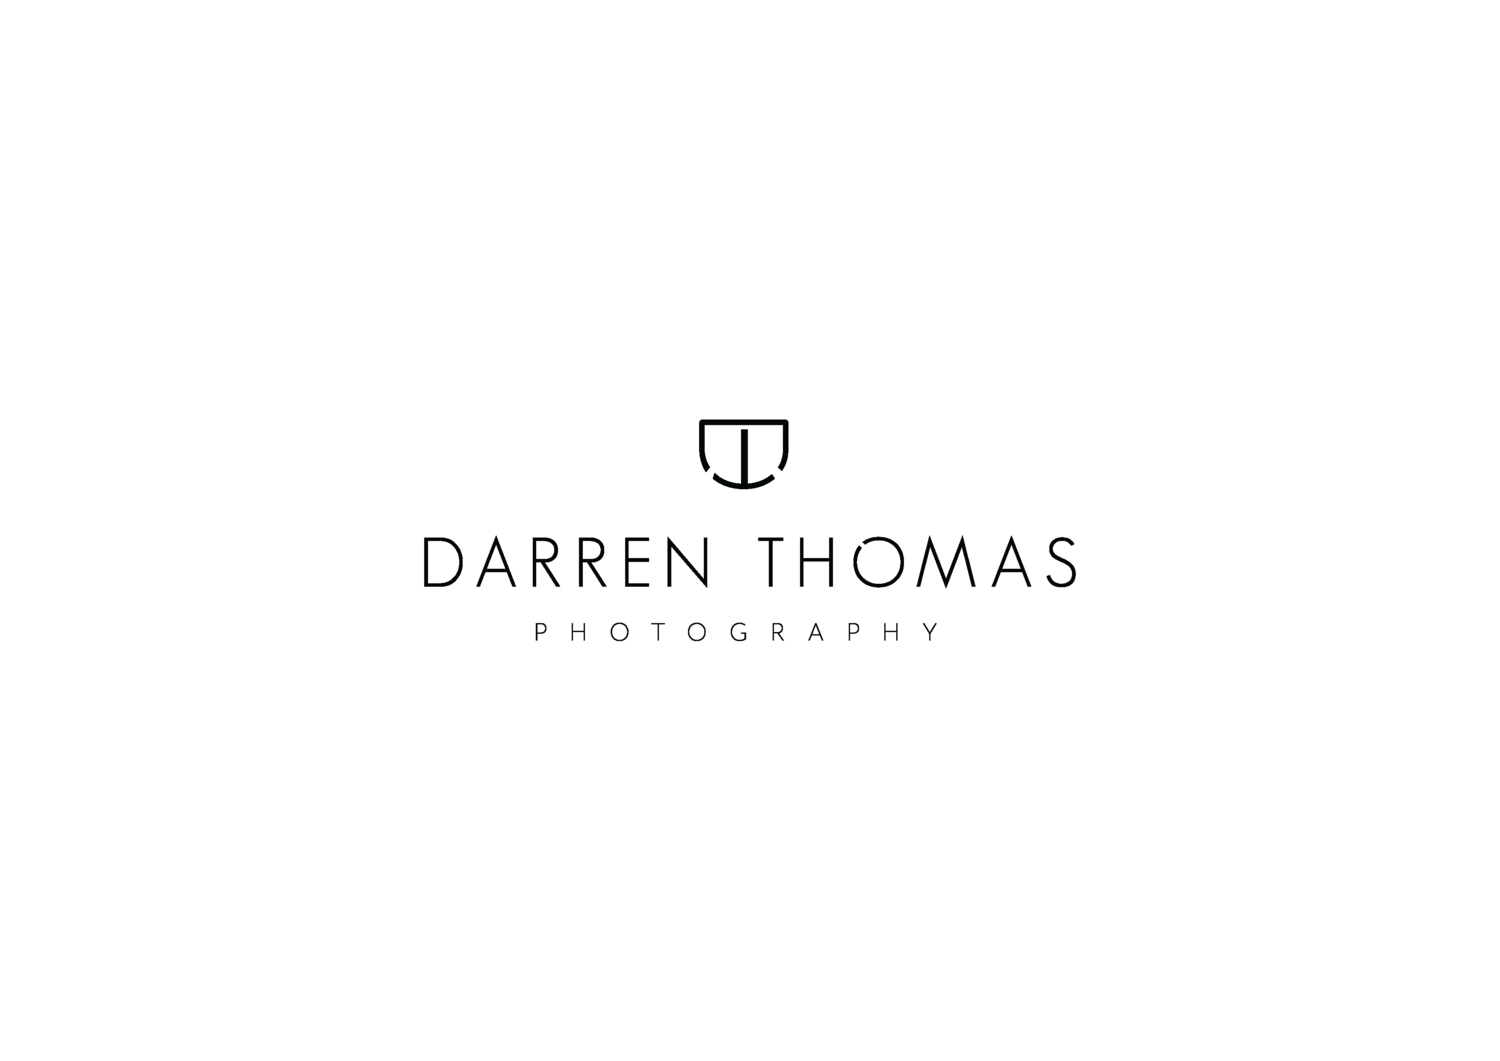 Darren Thomas - Cardiff - South Wales Wedding Photographer